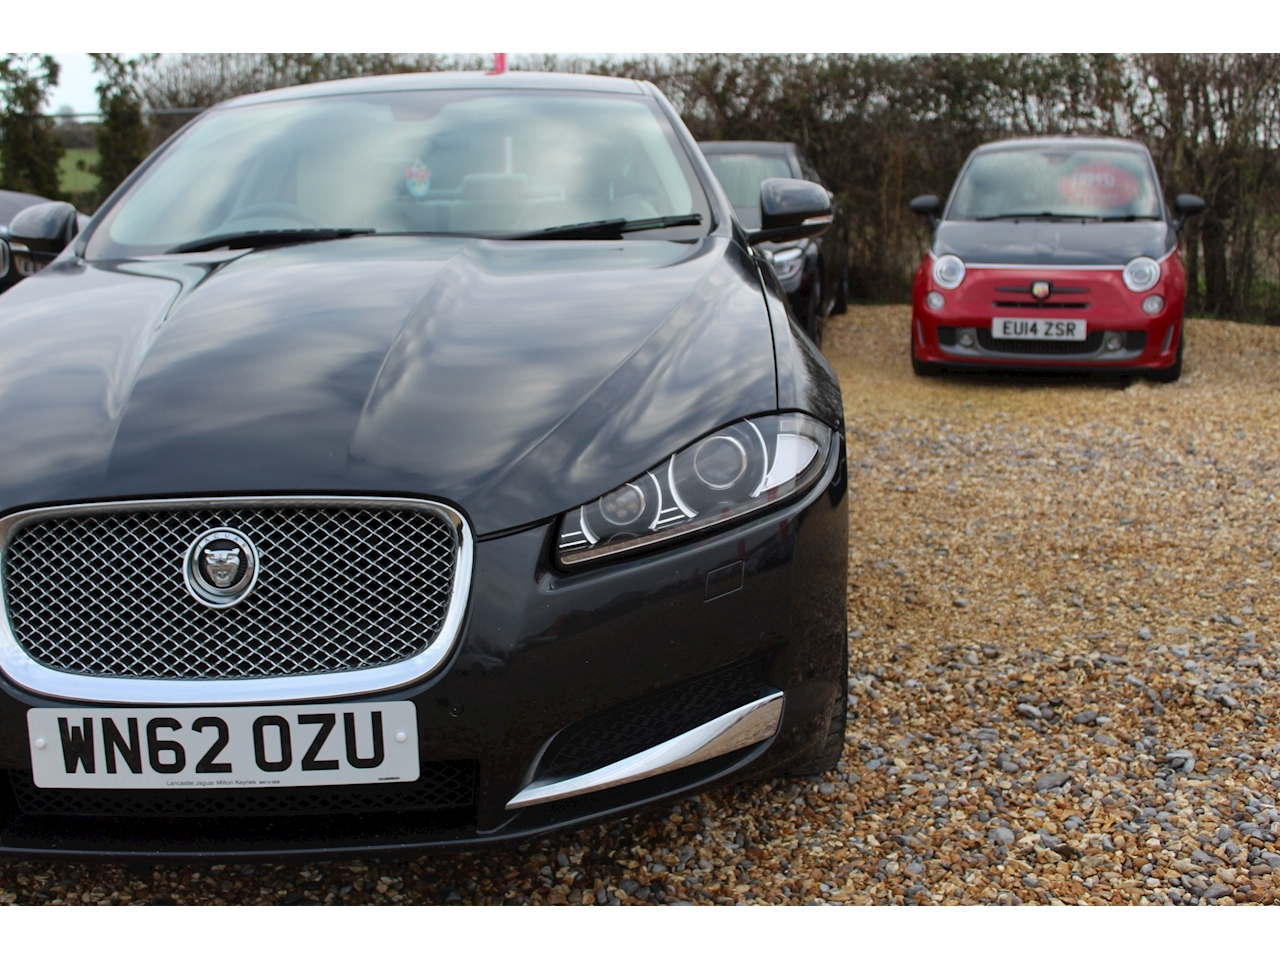 Jaguar Xf V6 Premium Luxury Saloon 3.0 Automatic Diesel